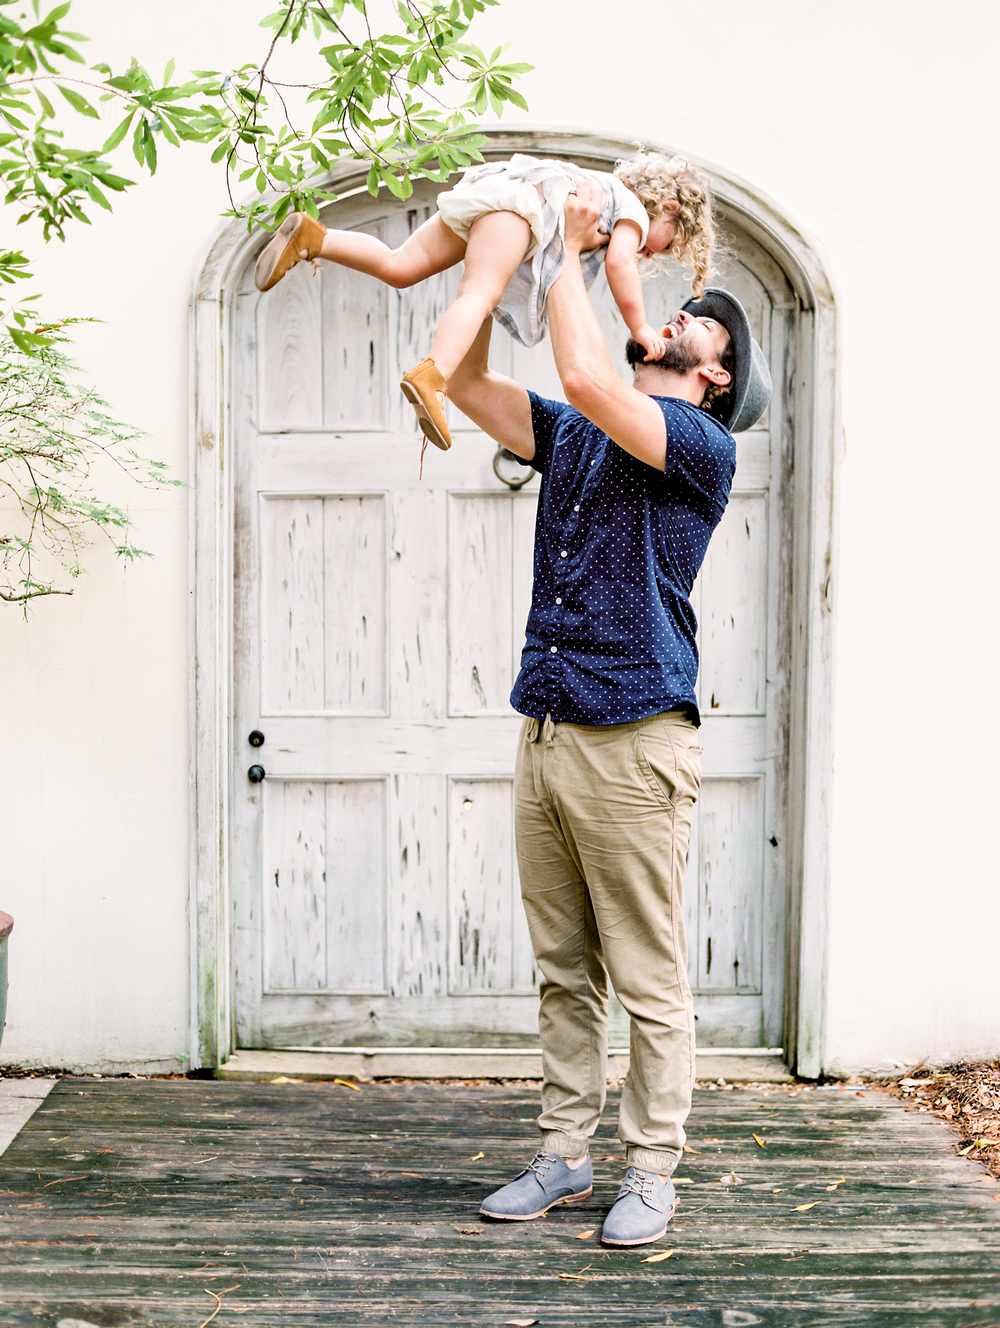 Daddy and daughter picture | Kaylie B. Poplin Photography | Rosemary Beach, Florida